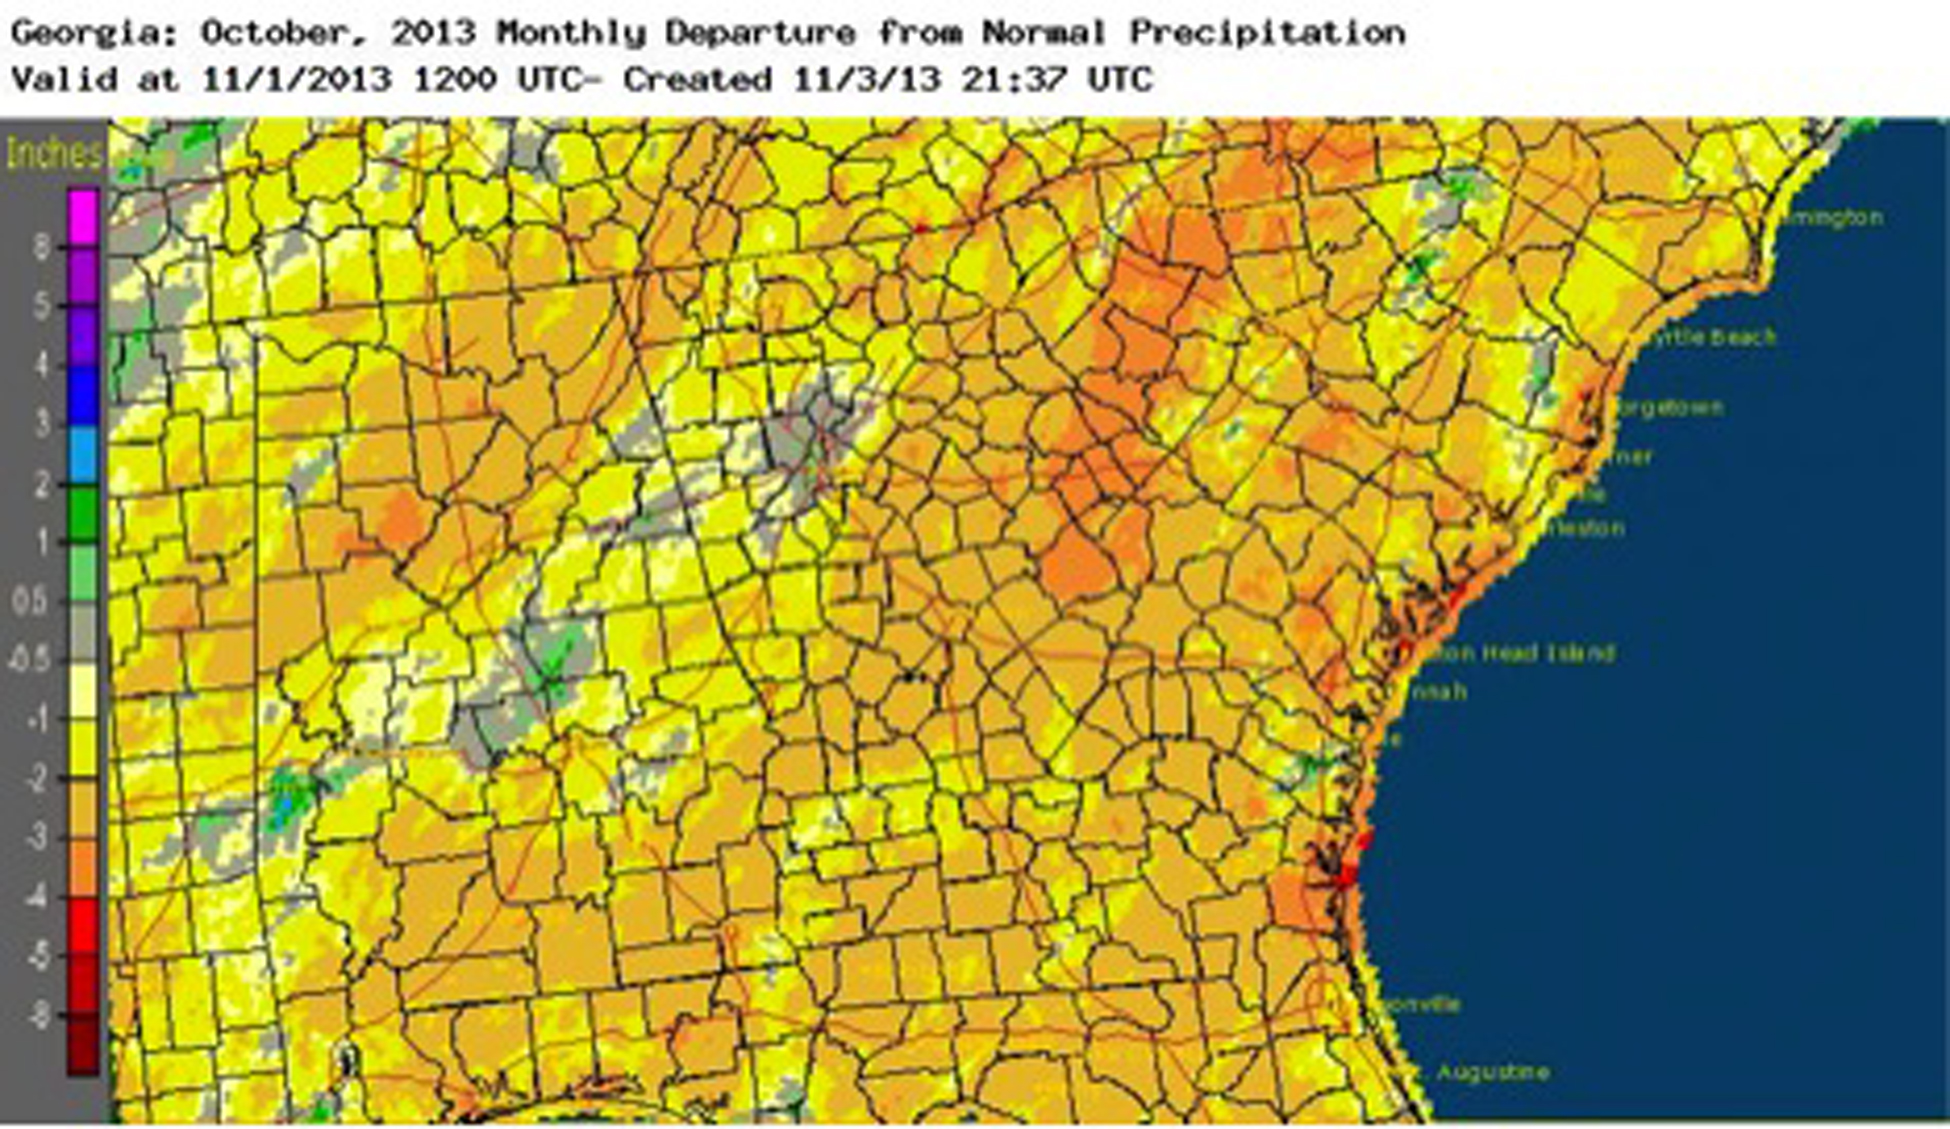 Many parts of Georgia only saw about a quarter of their normal October rainfall during October 2013.